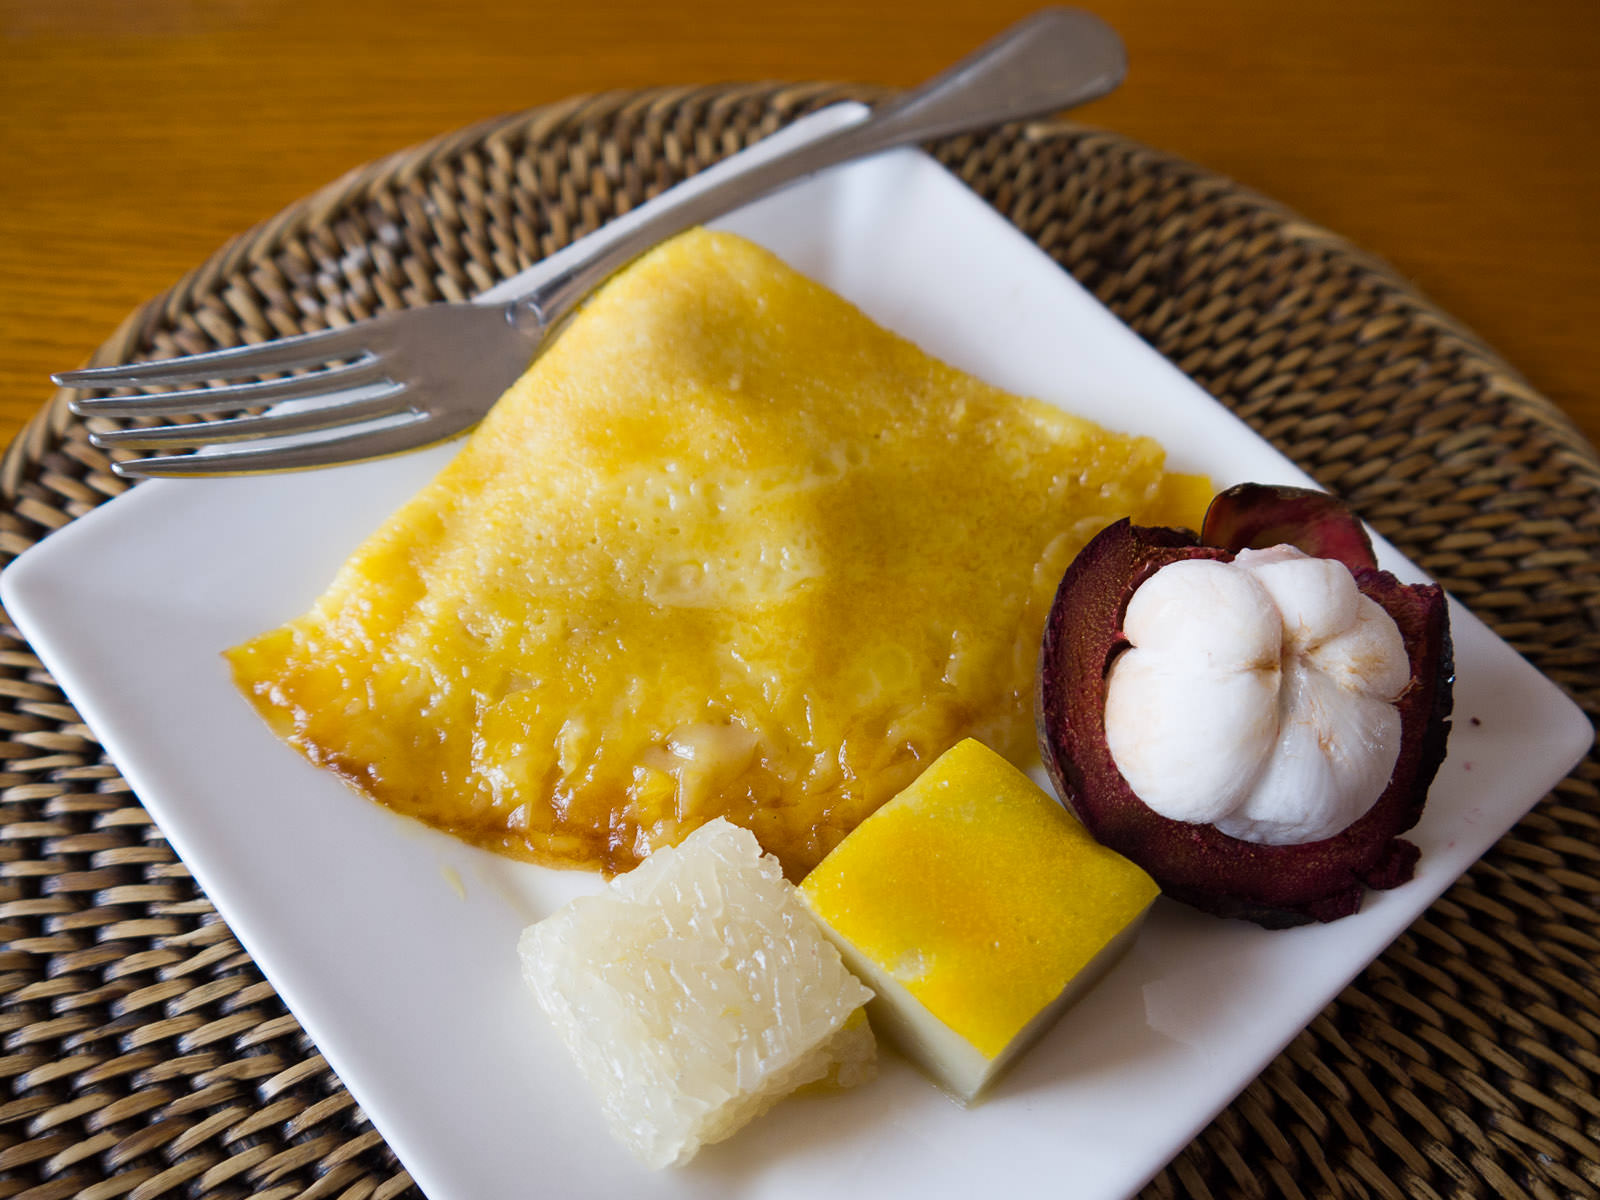 Crepe with orange sauce, Vietnamese sticky rice cakes, mangosteen